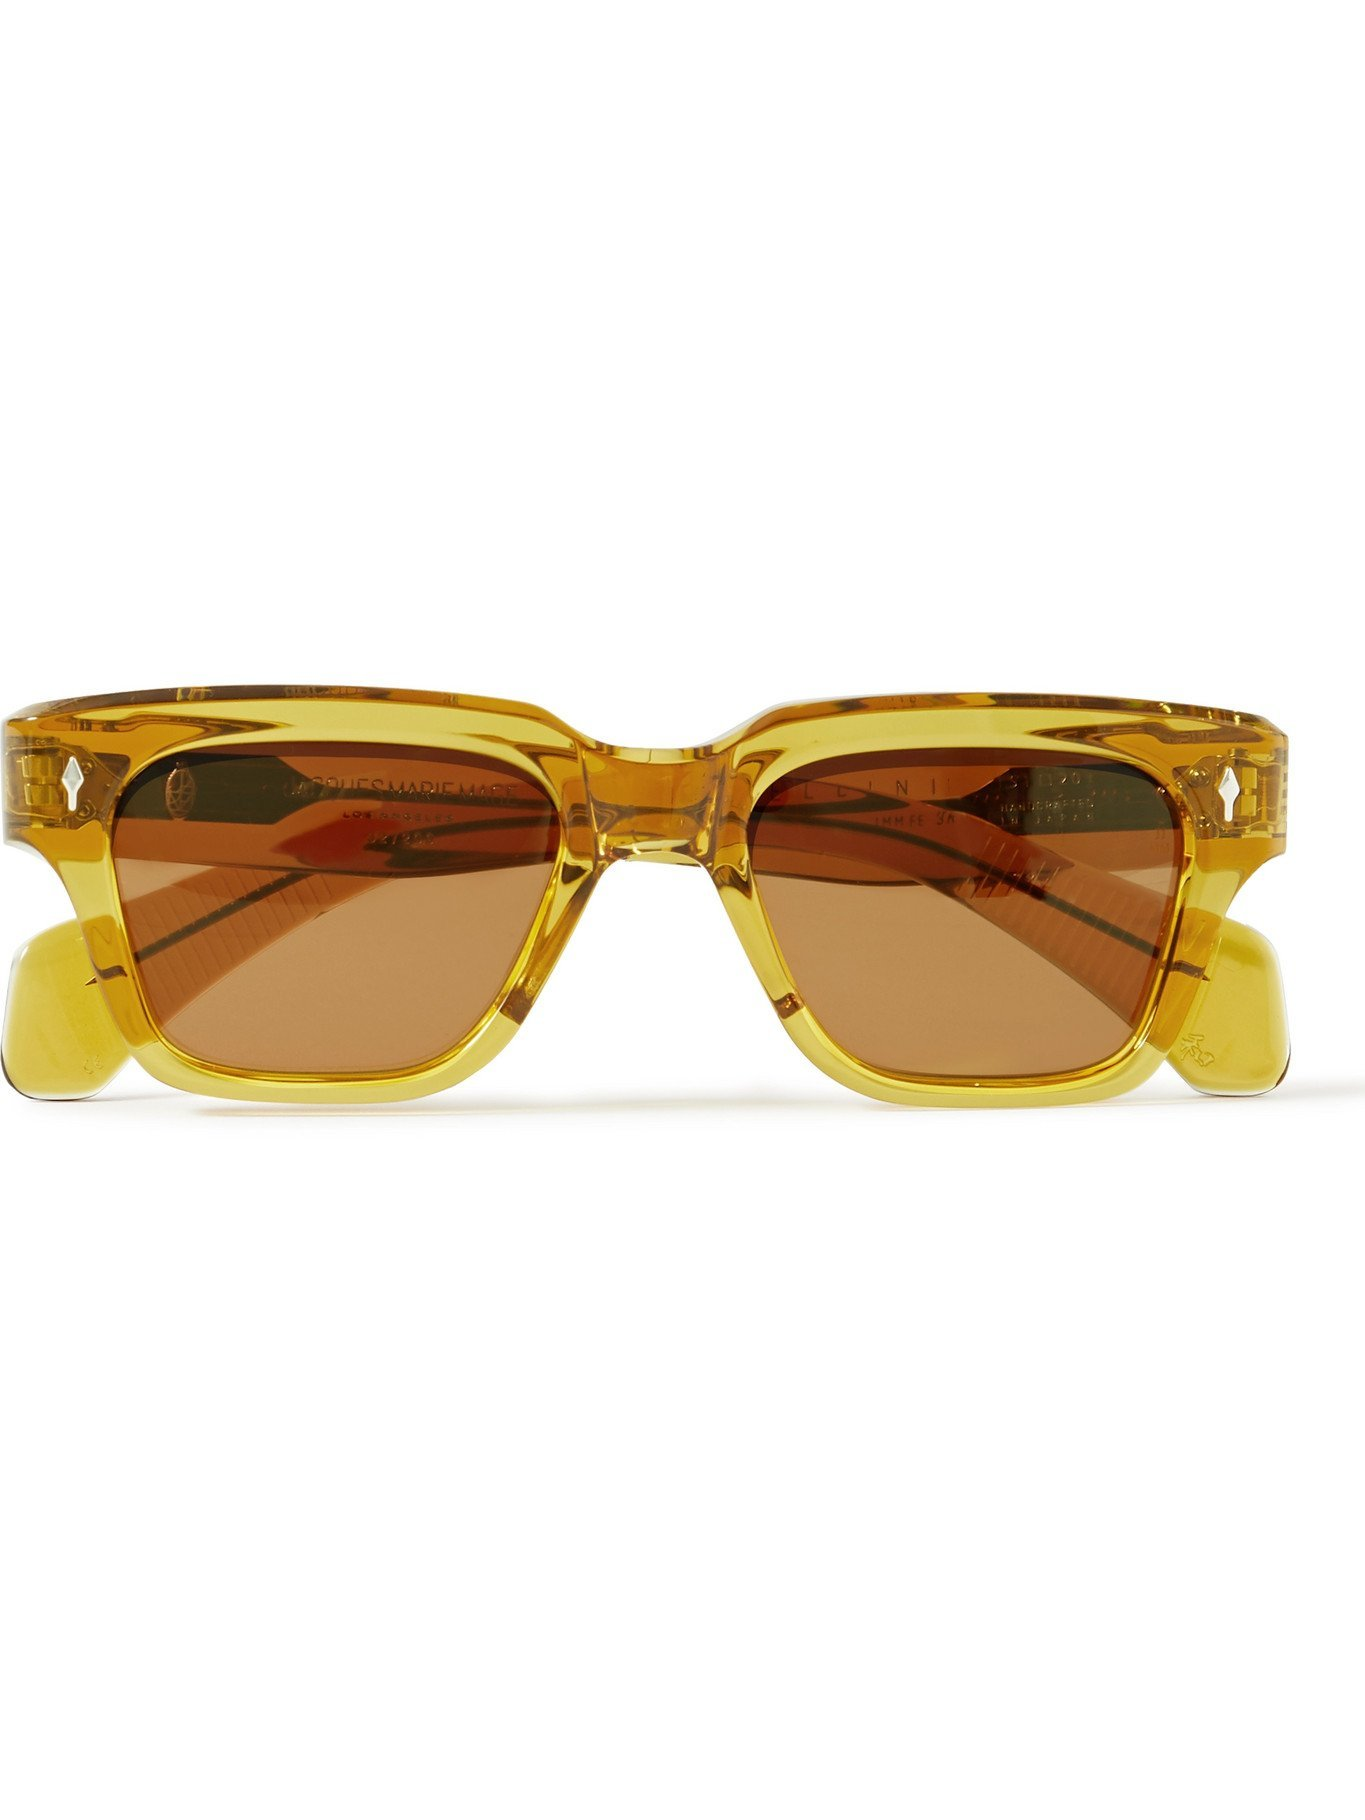 Photo: JACQUES MARIE MAGE - Fellini Square-Frame Acetate Sunglasses